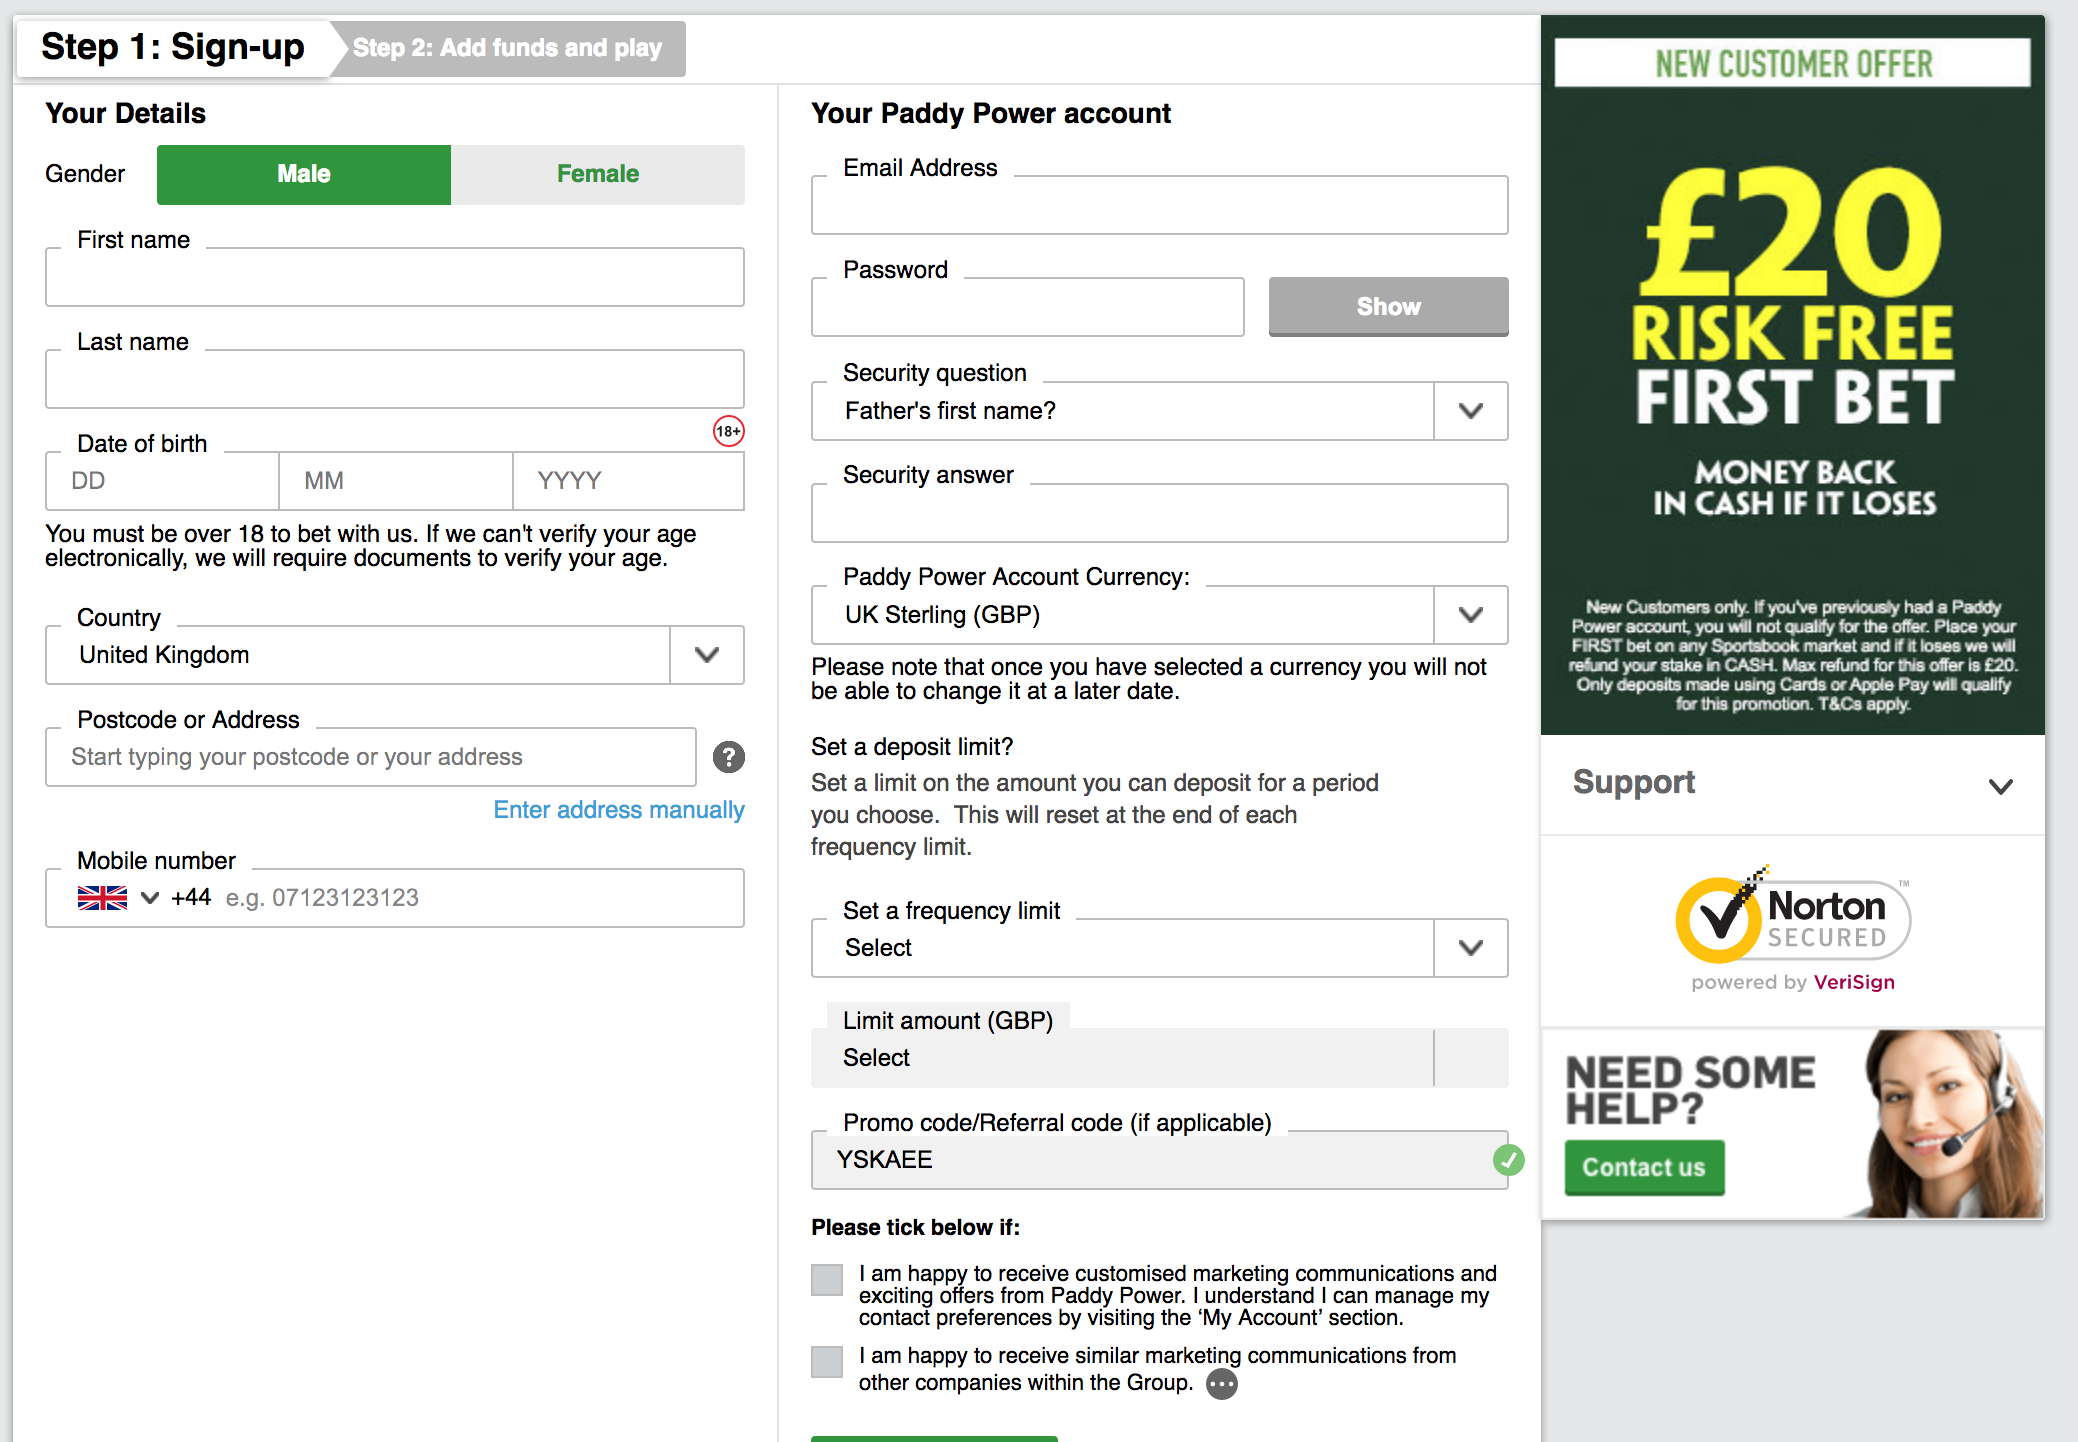 what is the Paddy Power 20 risk free offer?